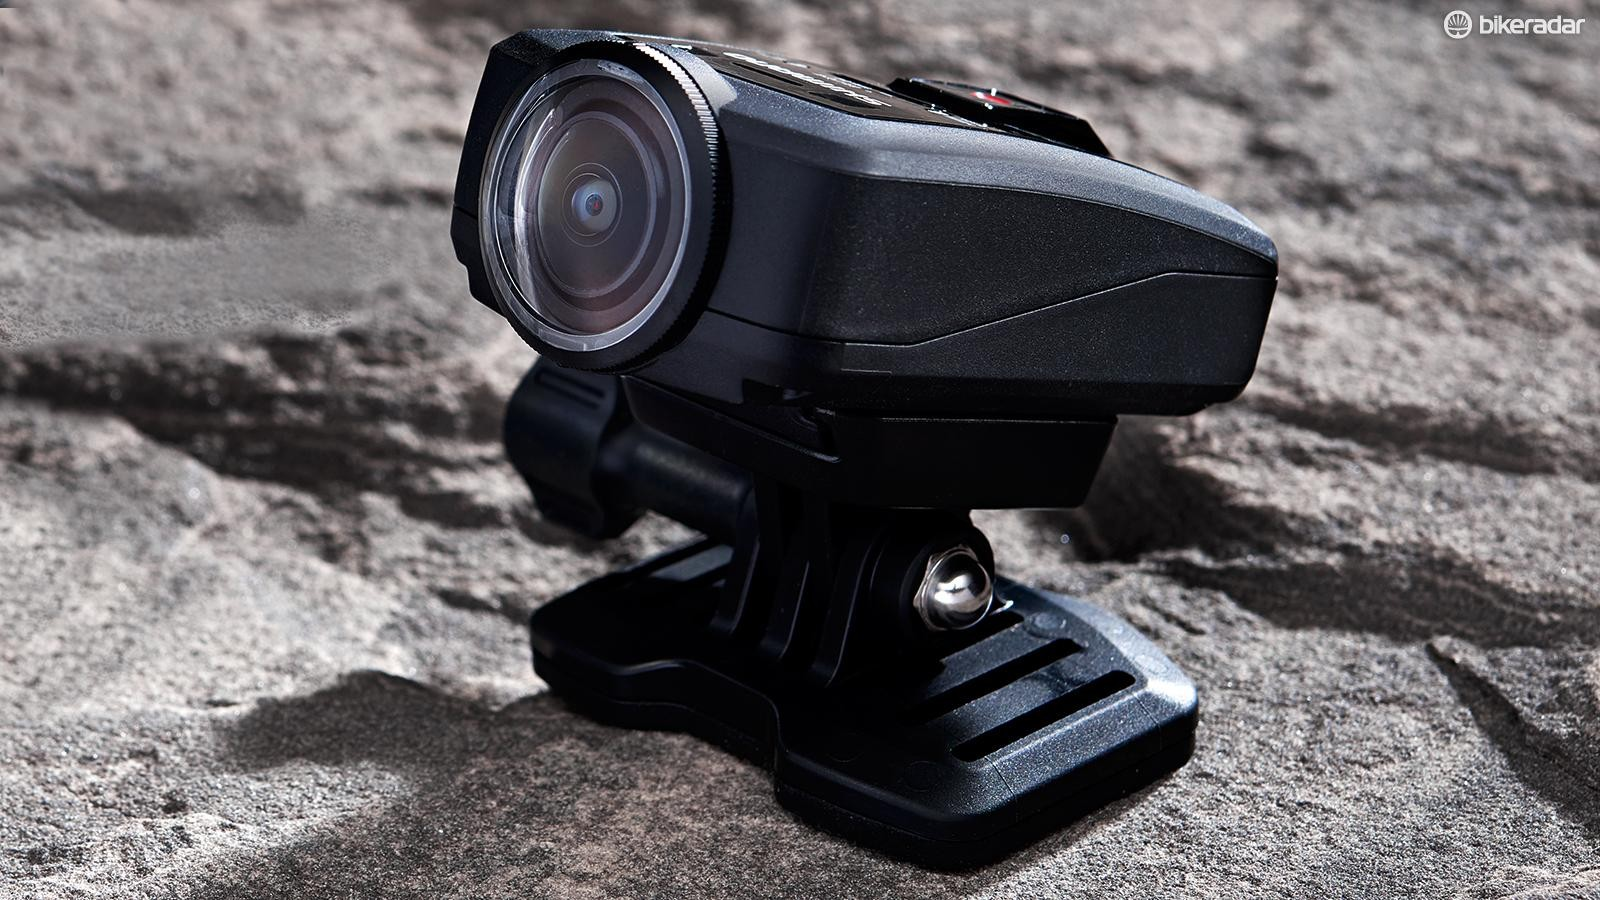 Shimano's Sport Camera is light, sturdy and a competent performer